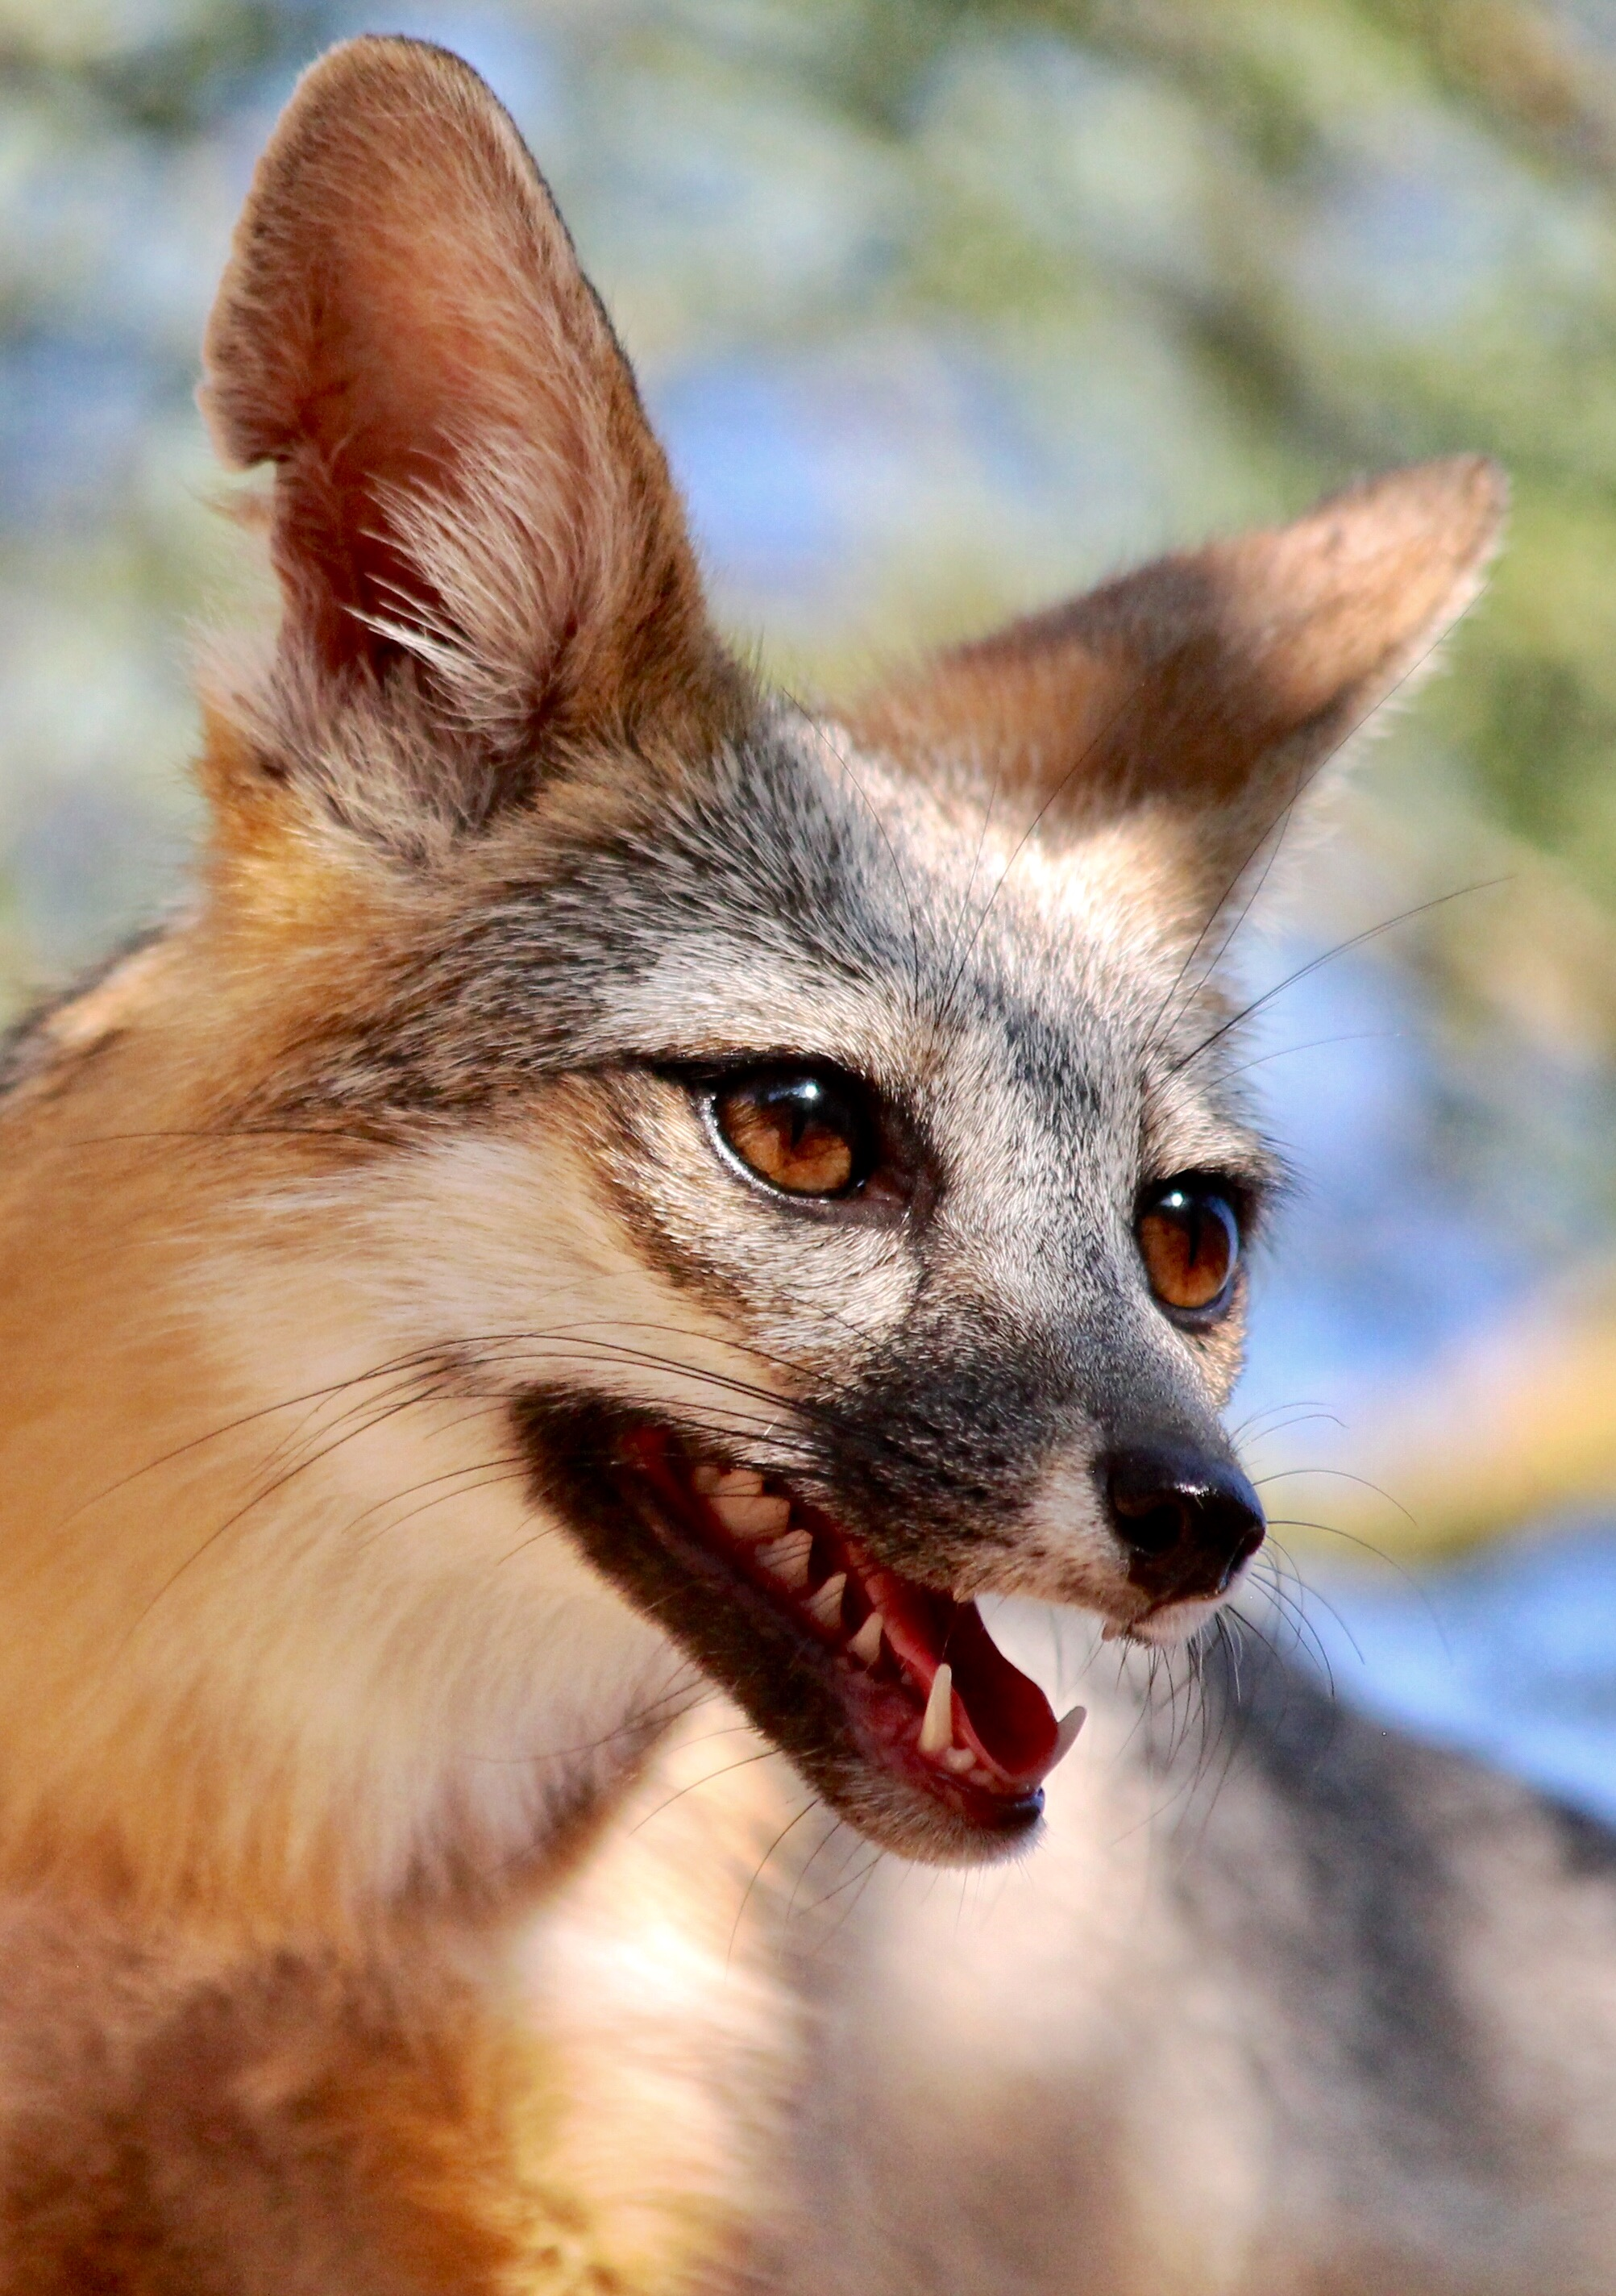 105785 download wallpaper Animals, Fox, Protruding Tongue, Tongue Stuck Out, Animal, Brown screensavers and pictures for free